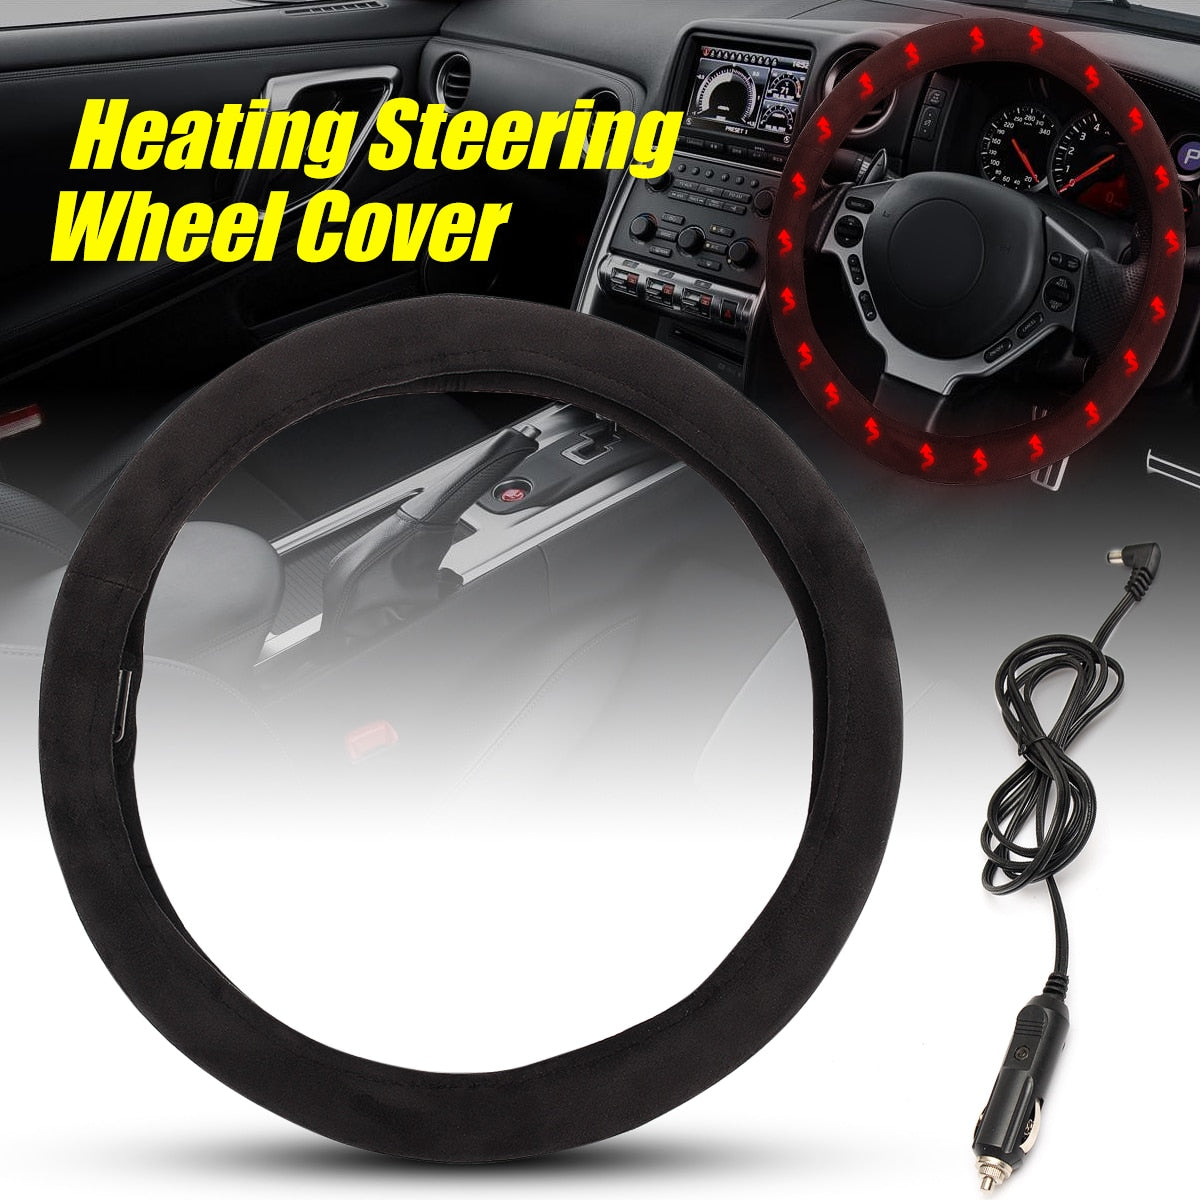 Heated Electric Steering Wheel Cover - ShopDeals365.com